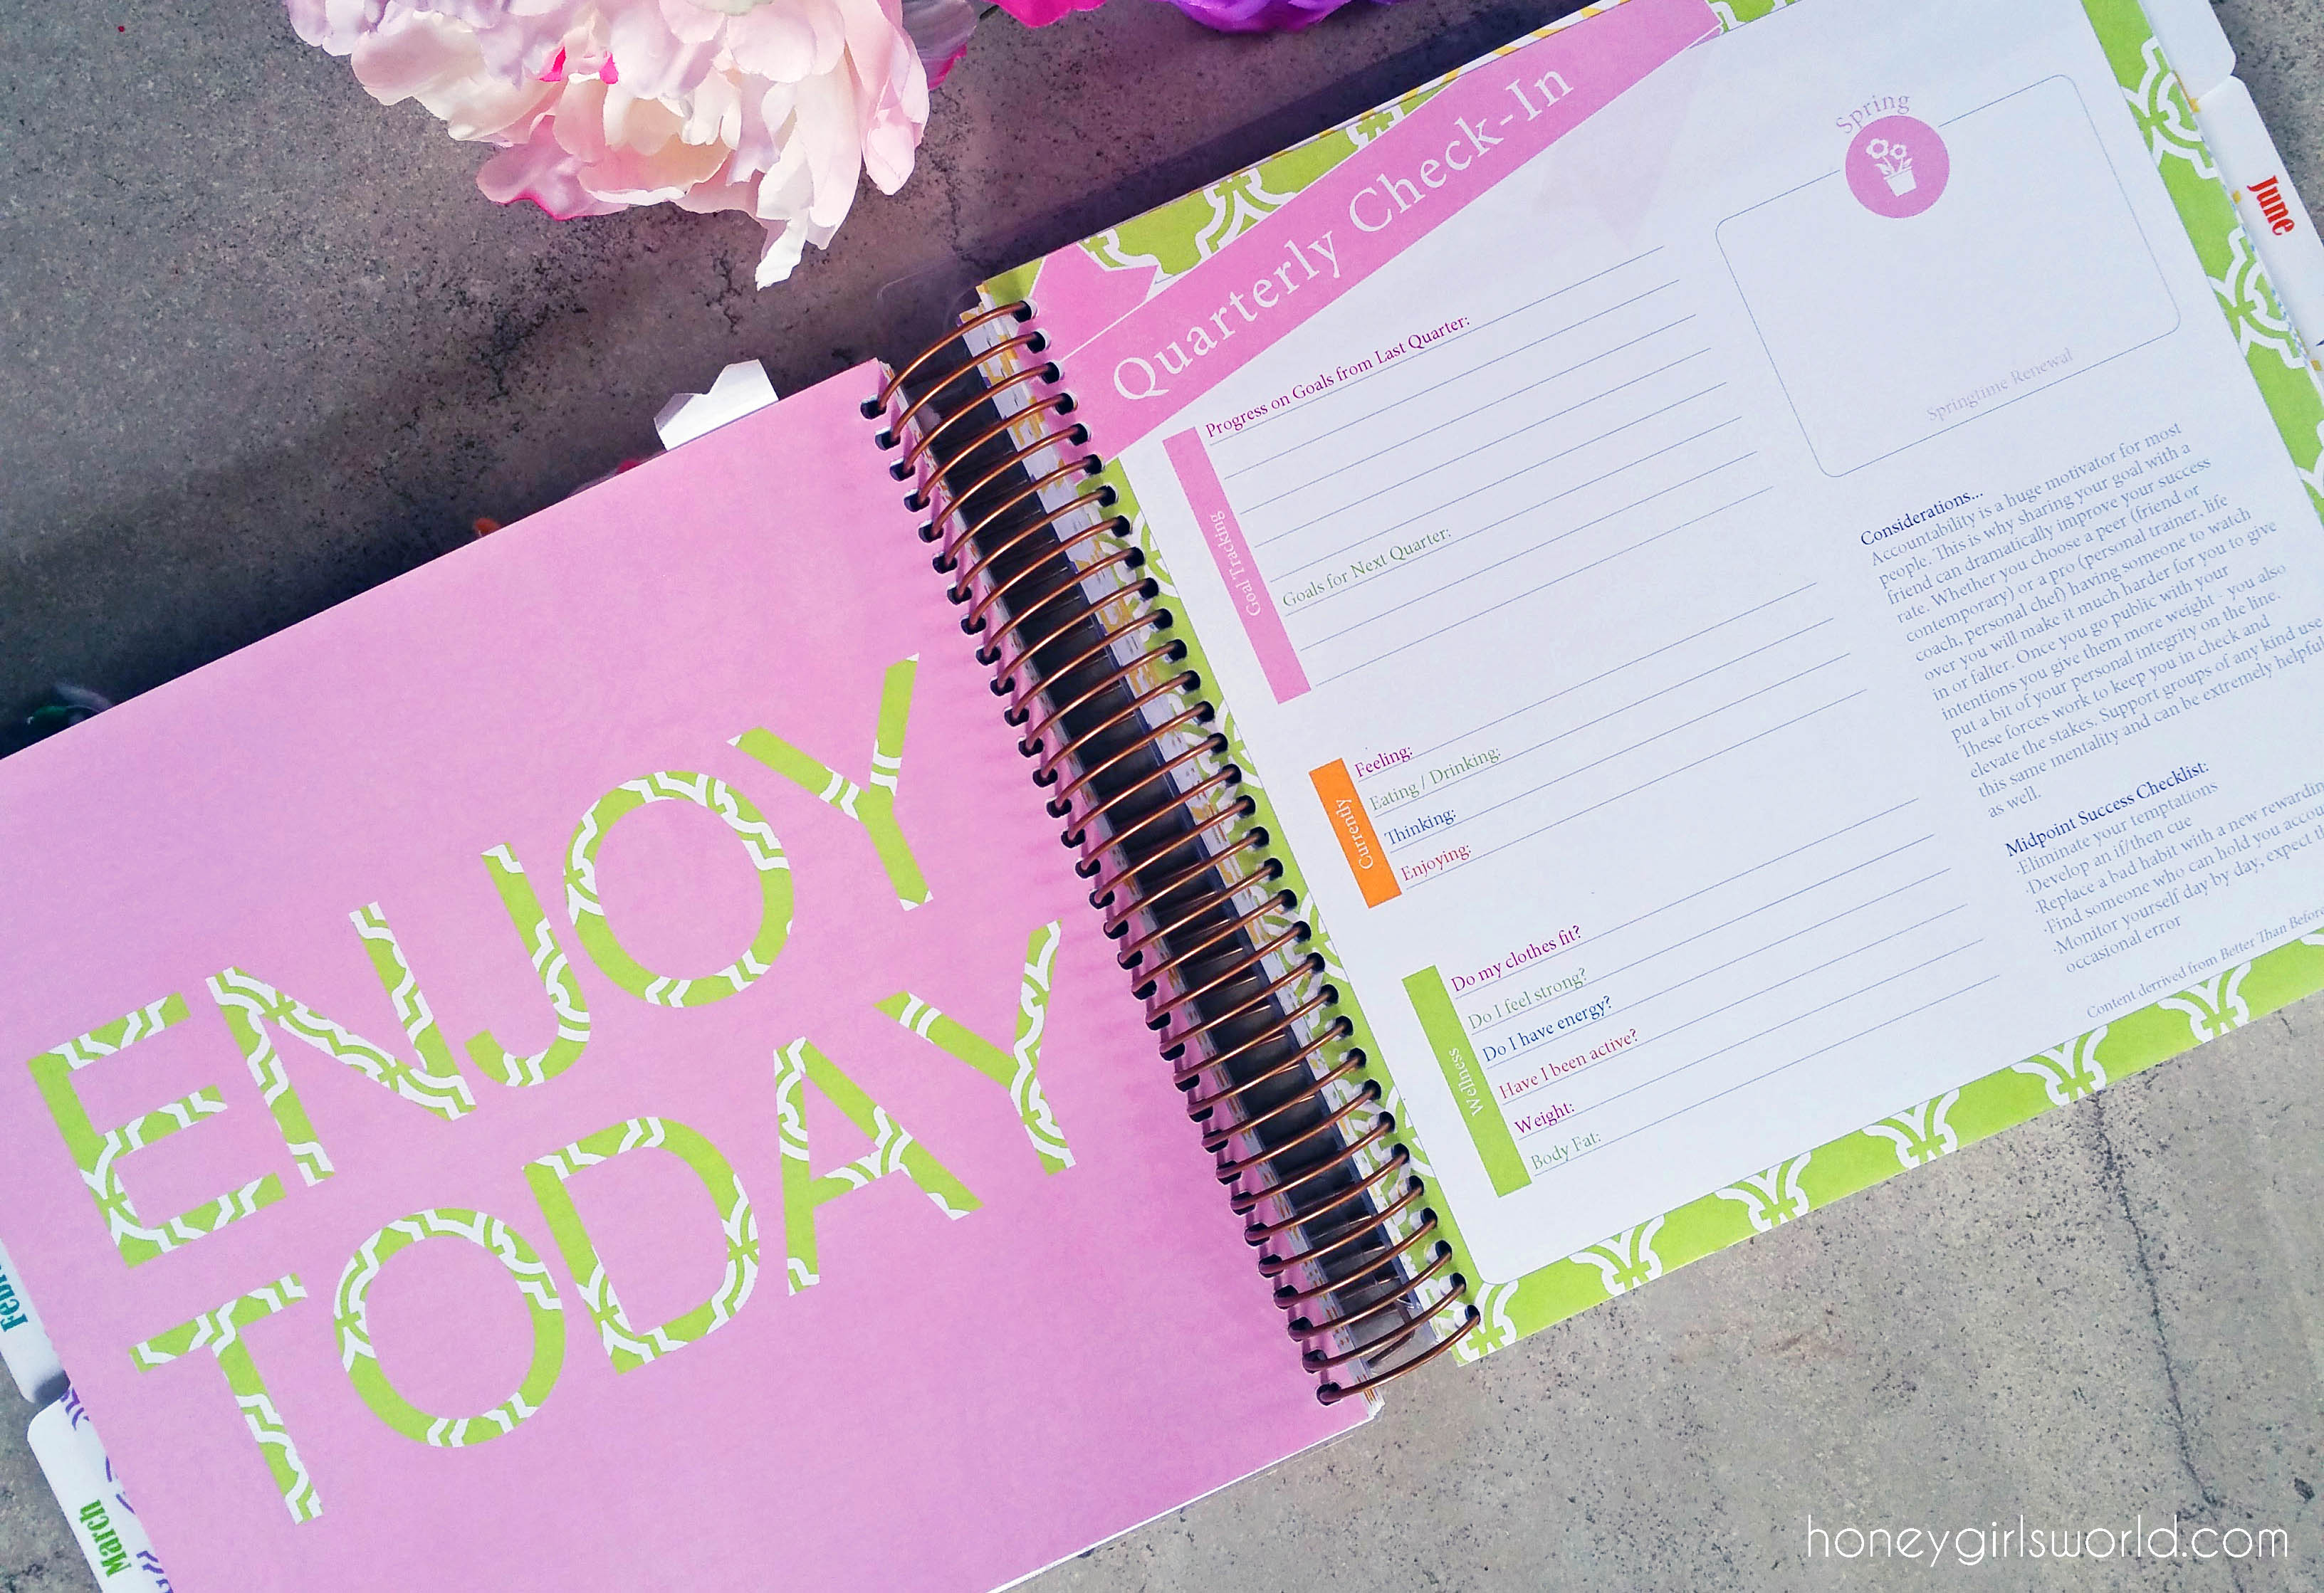 Planner, KIT Life Planner, Keeping It Together Planner, planner addict, planner review, 2016 planner, erin condren dupe, day on a page planner, yearly planner, yearly organizer, filofax, kikki k, planner accessories, plan, organization,